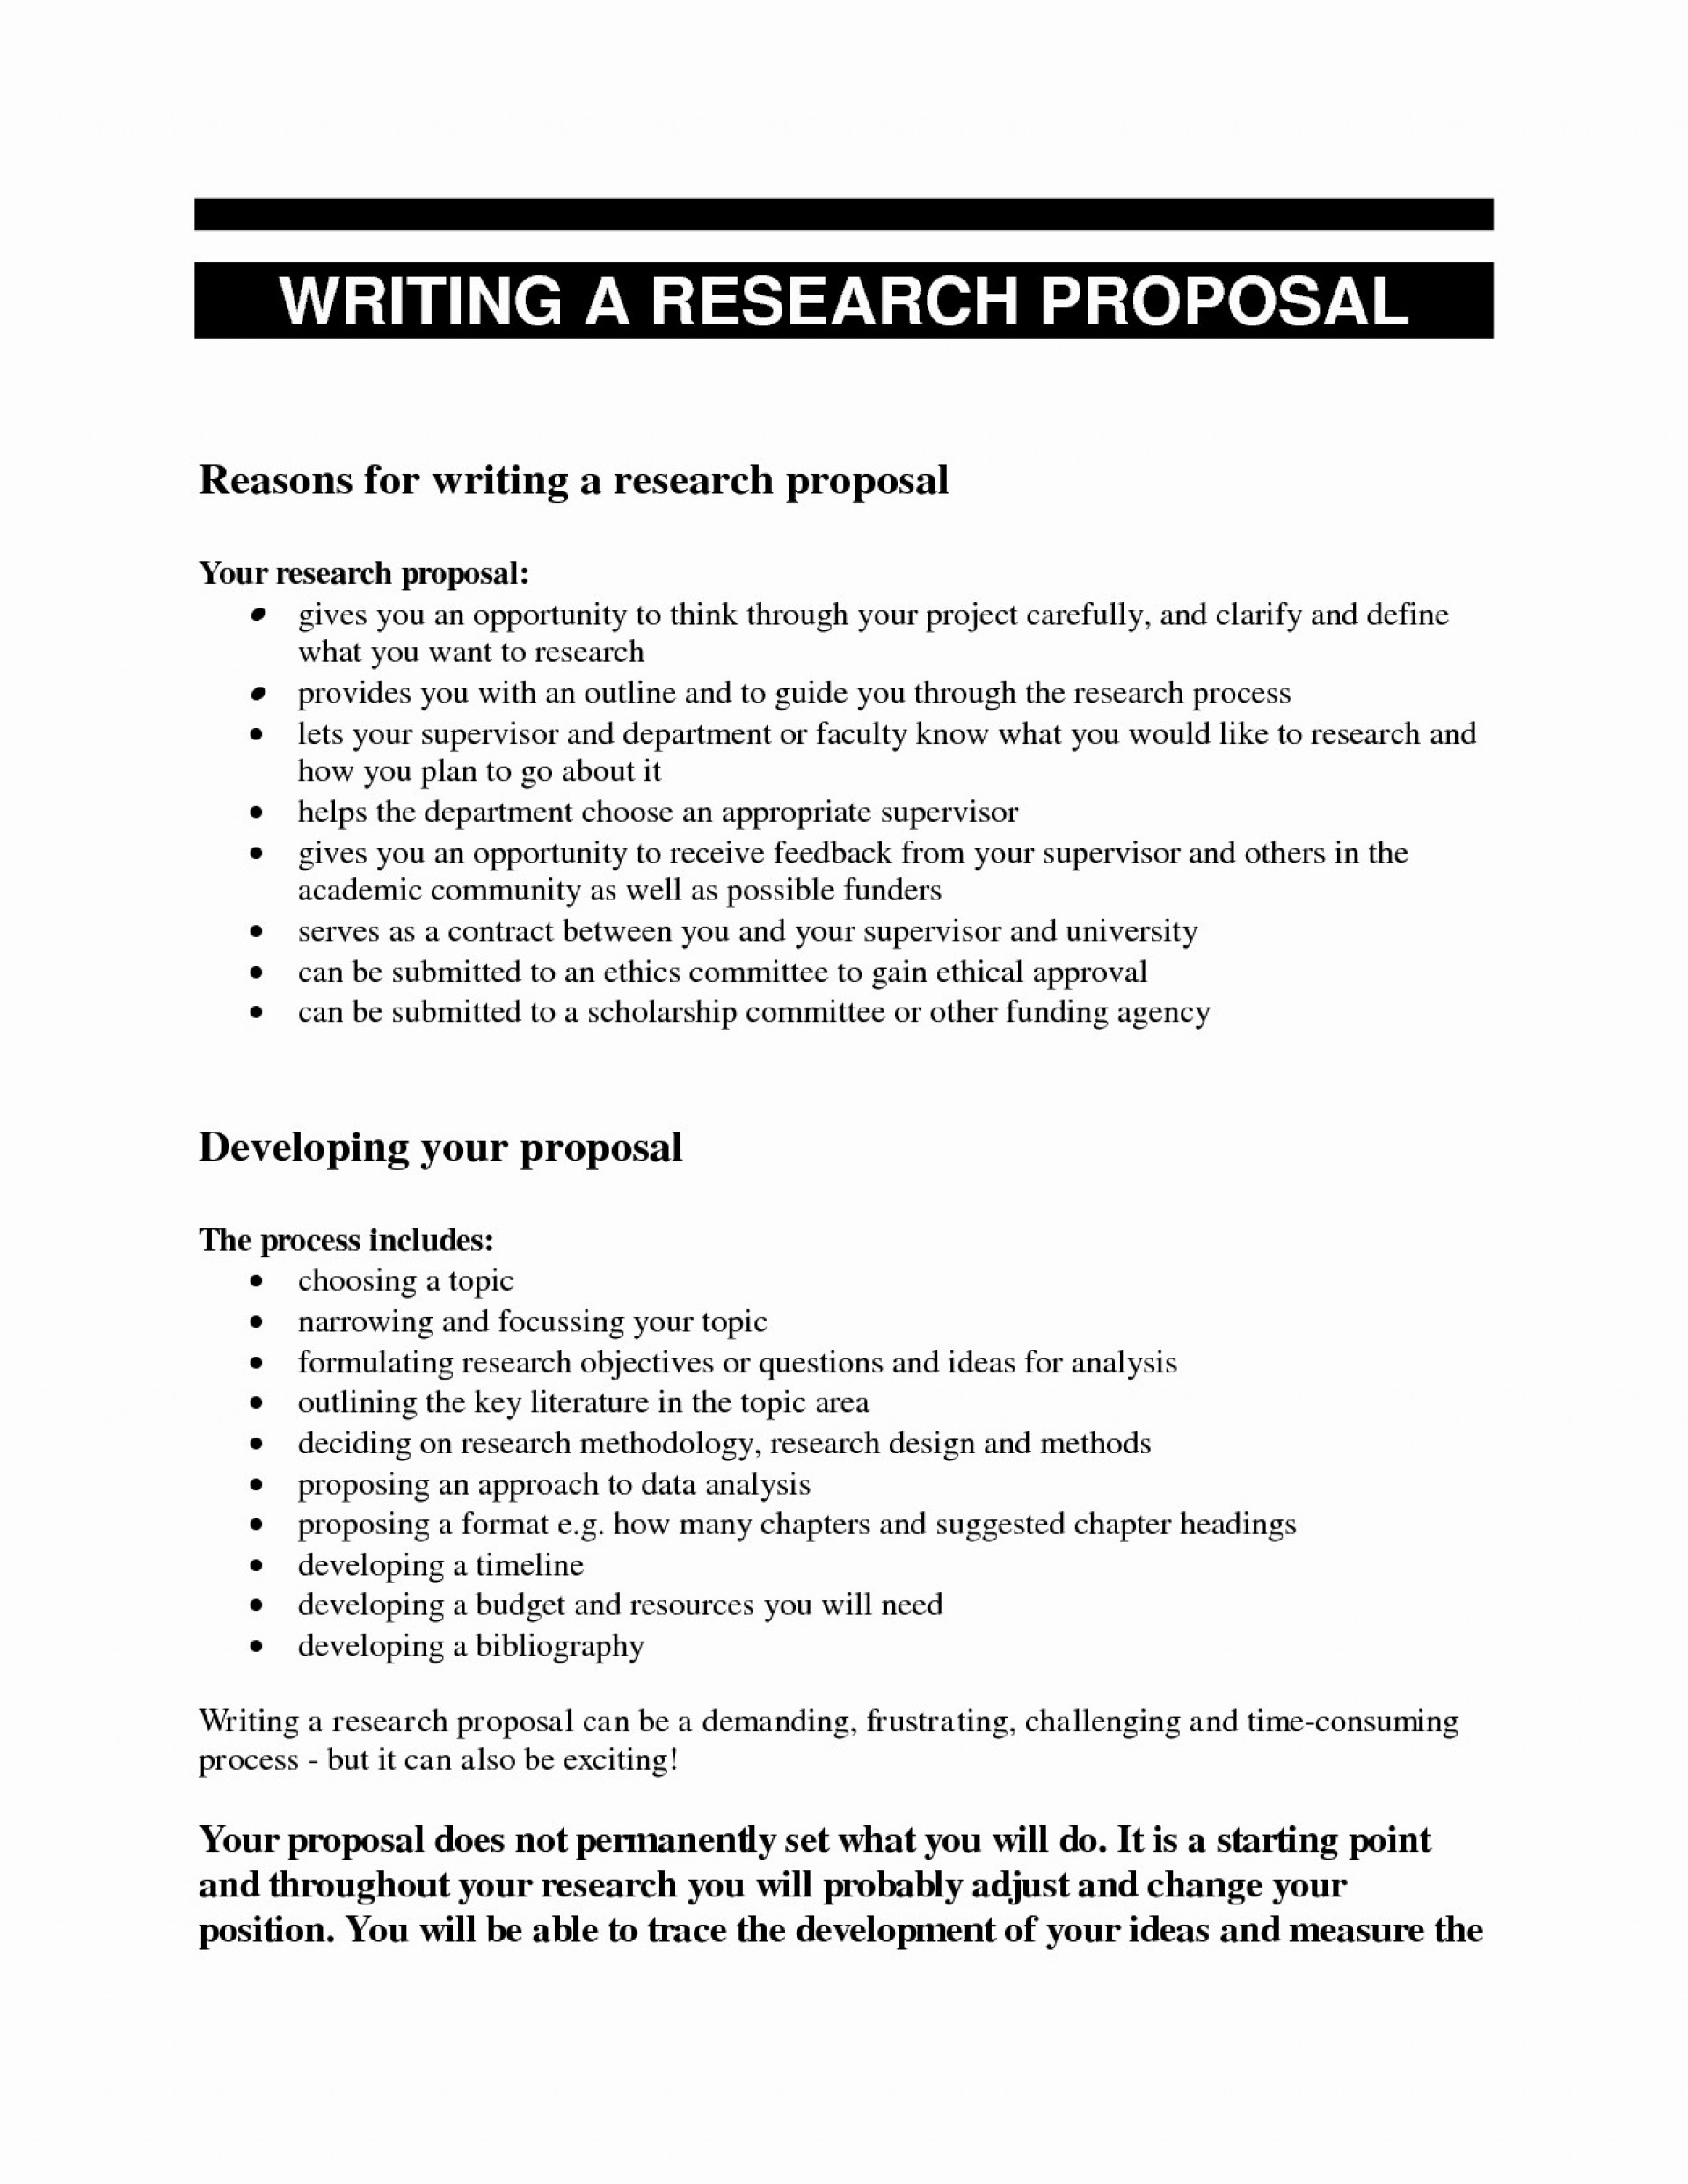 016 Research Proposal Example Mla Inspirational Essay Save Topics Juve Of Format Fearsome Paper In Education Topic Write 5 A 1920